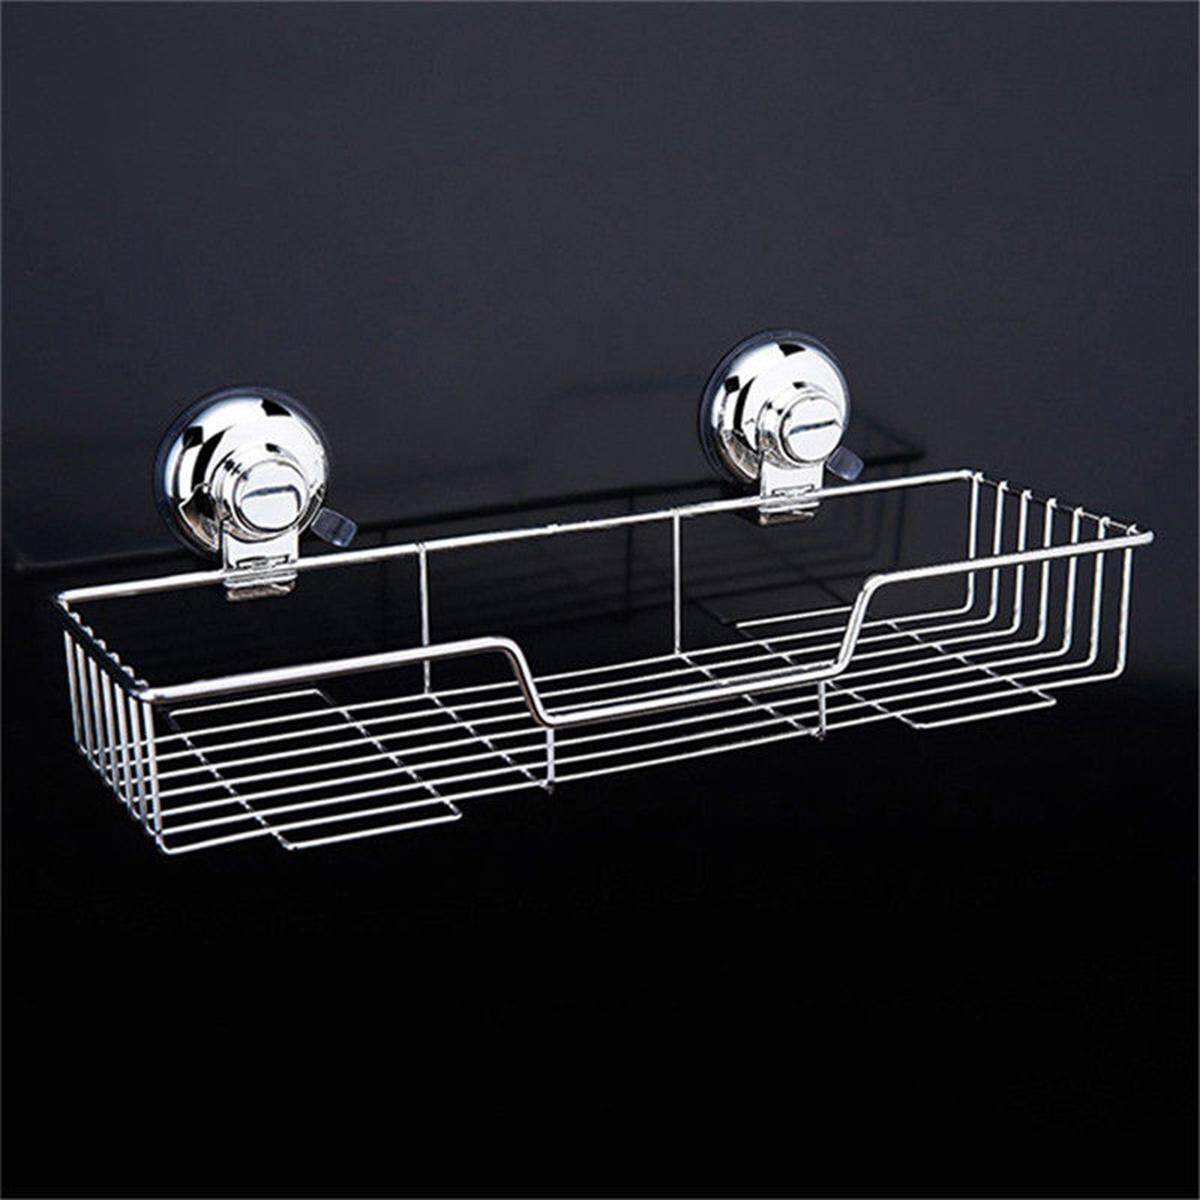 Stainless Steel Kitchen Bathroom Shower Shelf Storage Suction Basket Caddy Rack By Moonbeam.